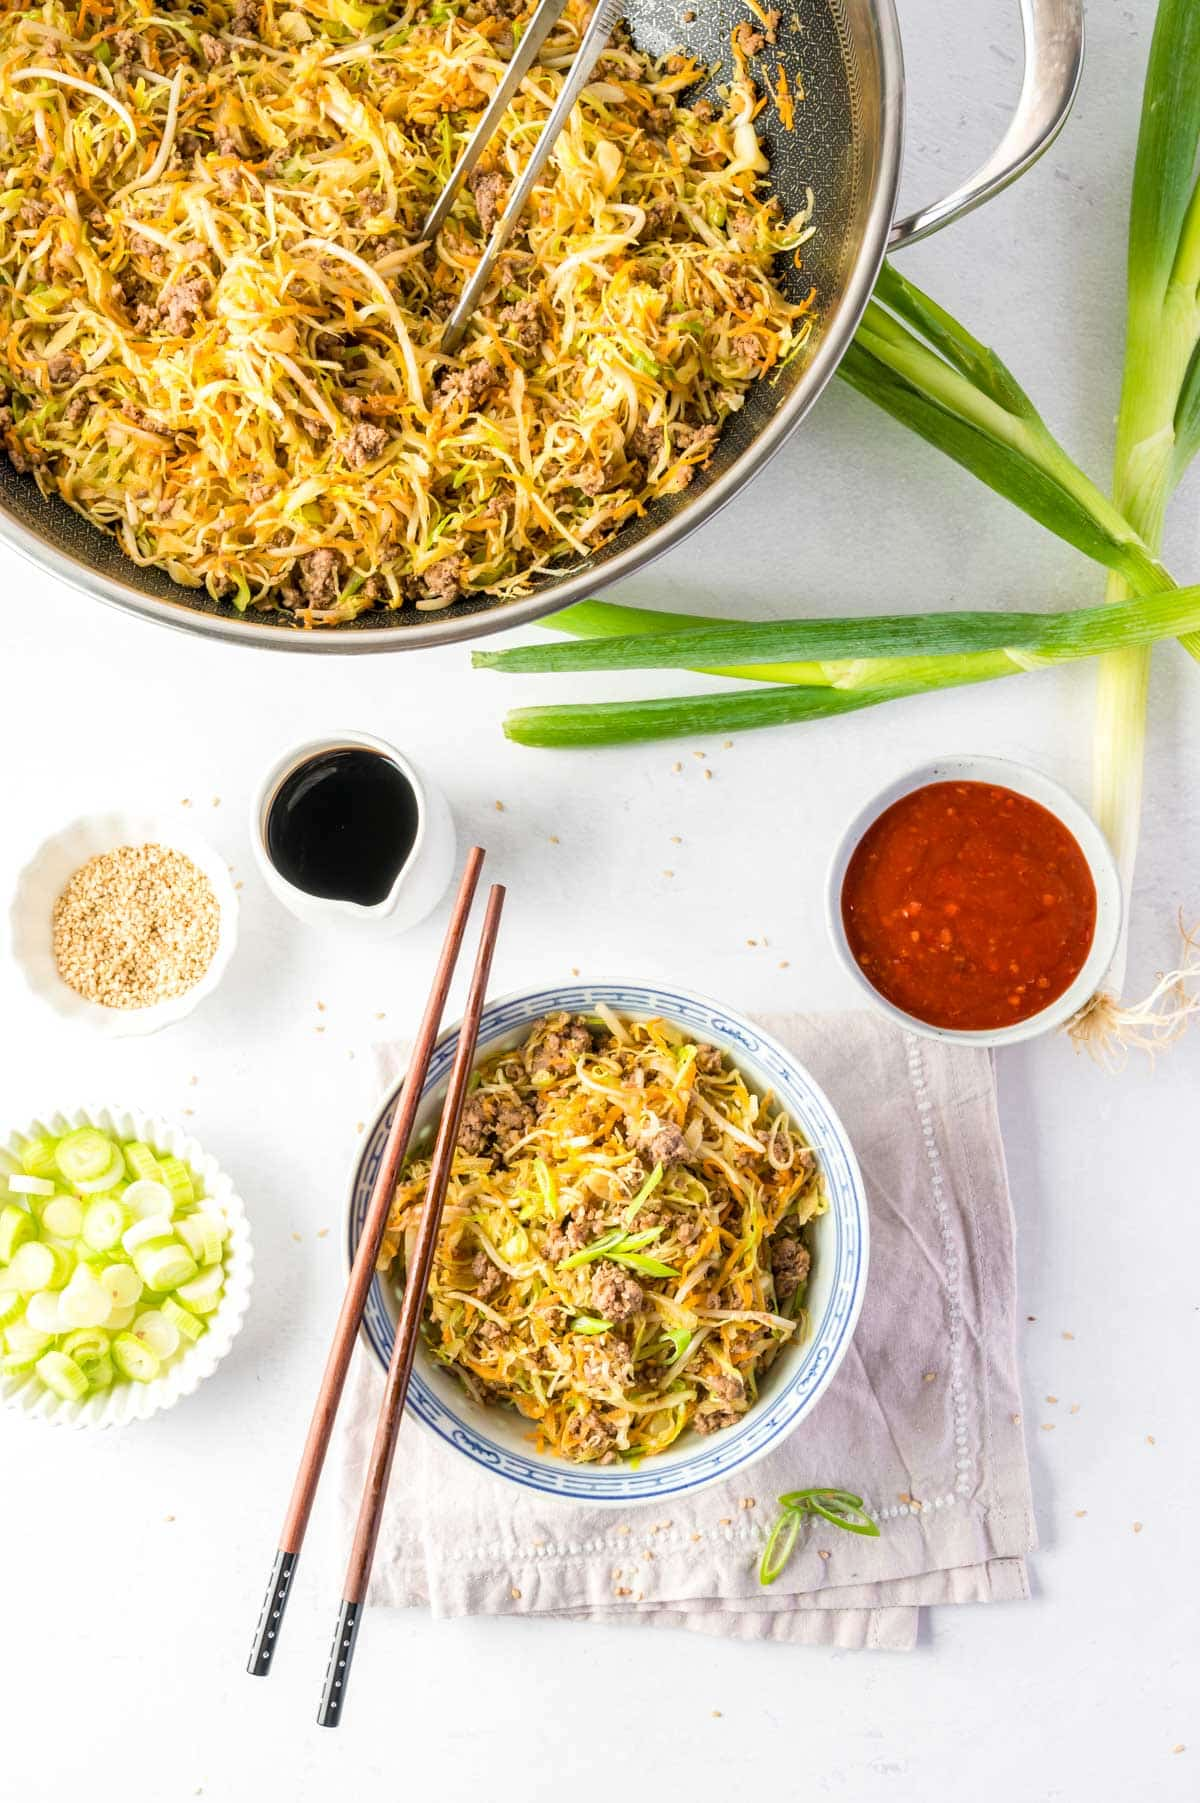 bowl with cabbage stir fry and sauce, chopsticks, wok, and green onion